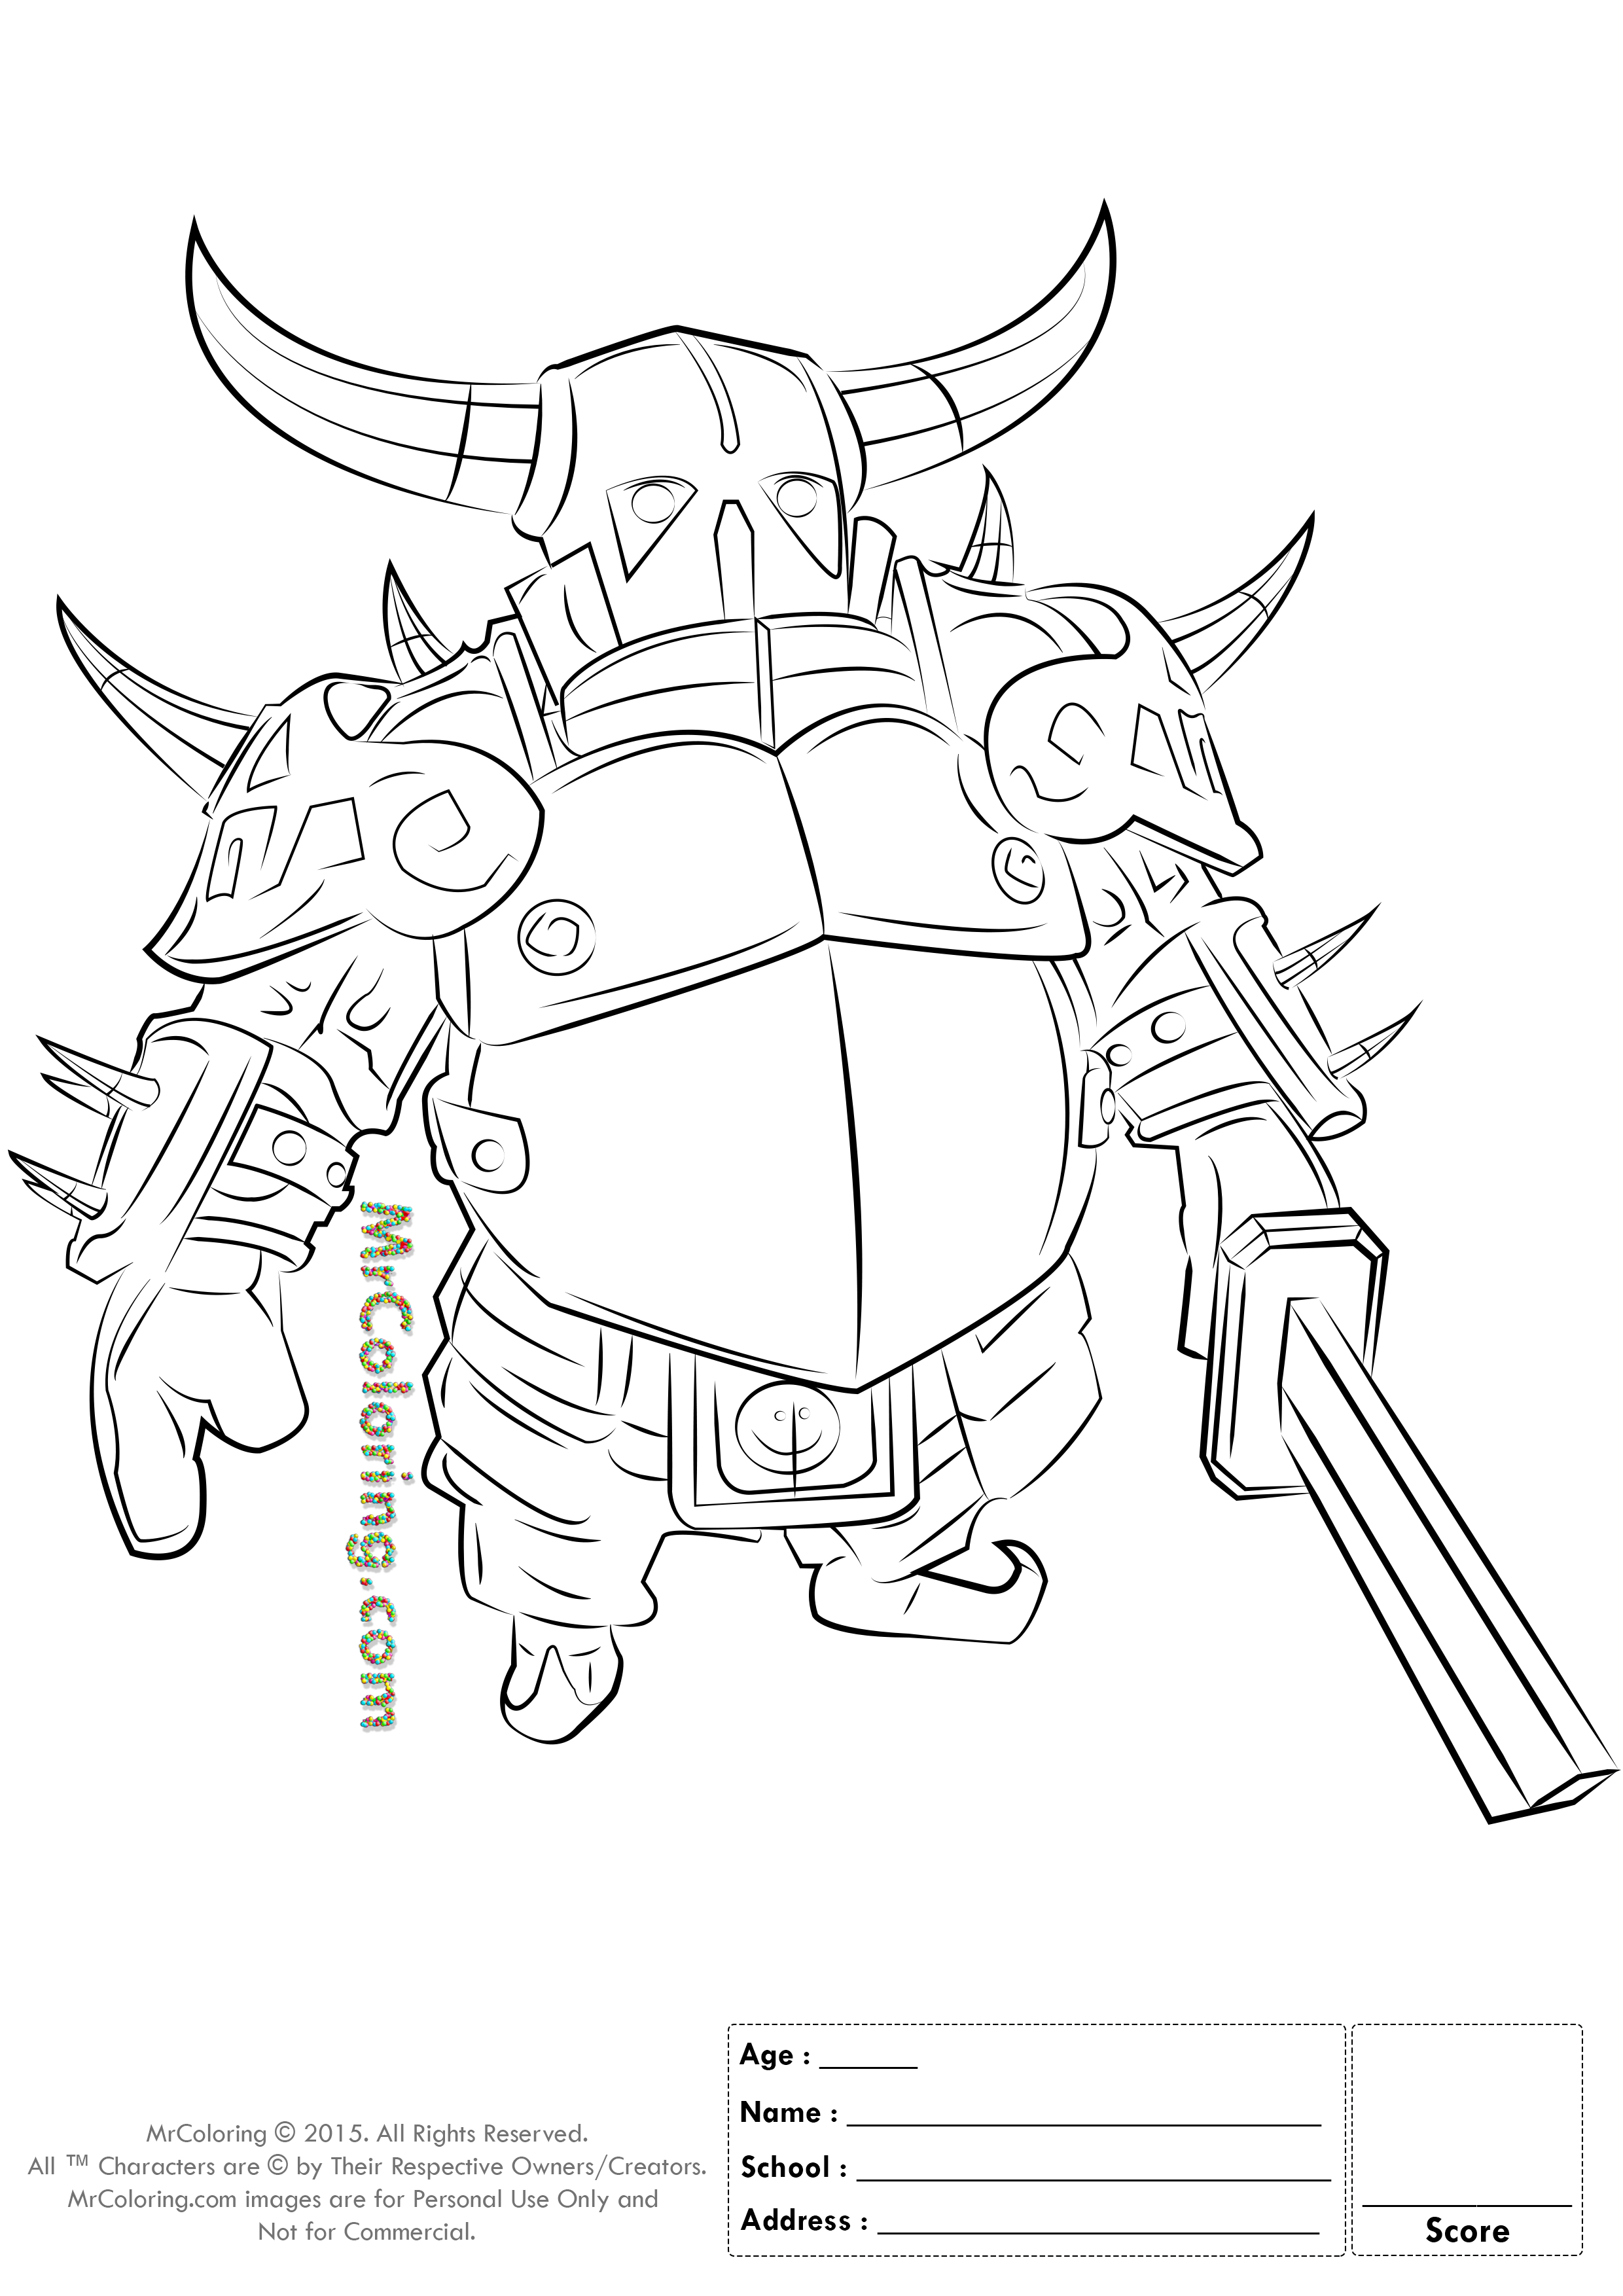 Free Printable Clash of Clans Pekka Knight Coloring Pages - 1 | Jack ...